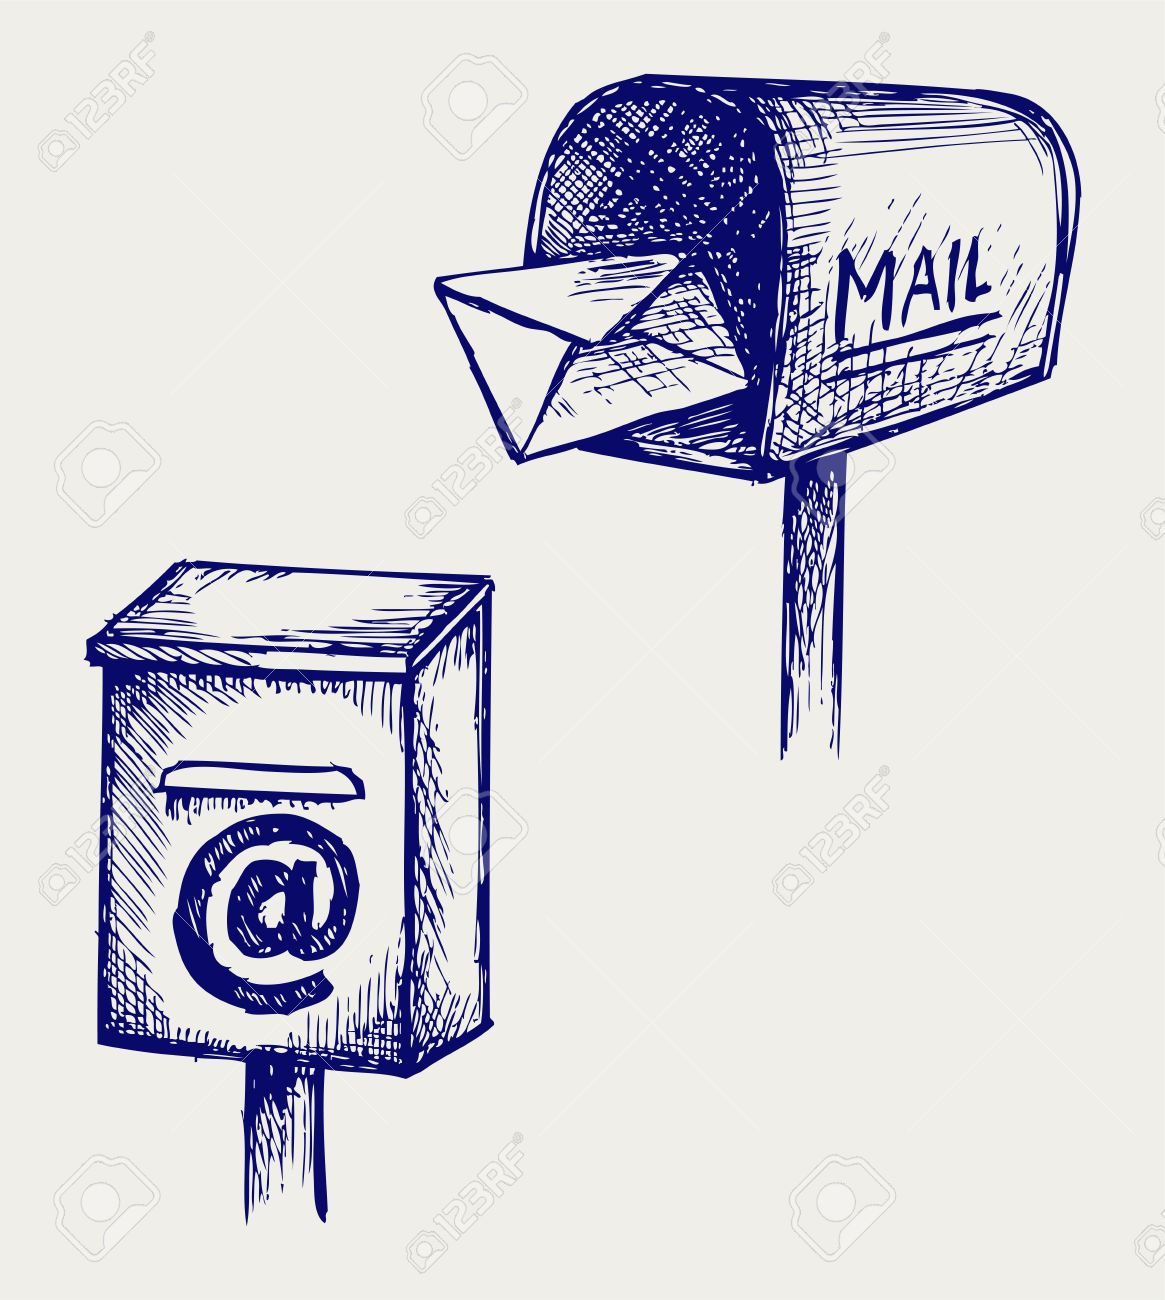 1165x1300 Standard Mailbox With Mail Doodle Style Royalty Free Cliparts